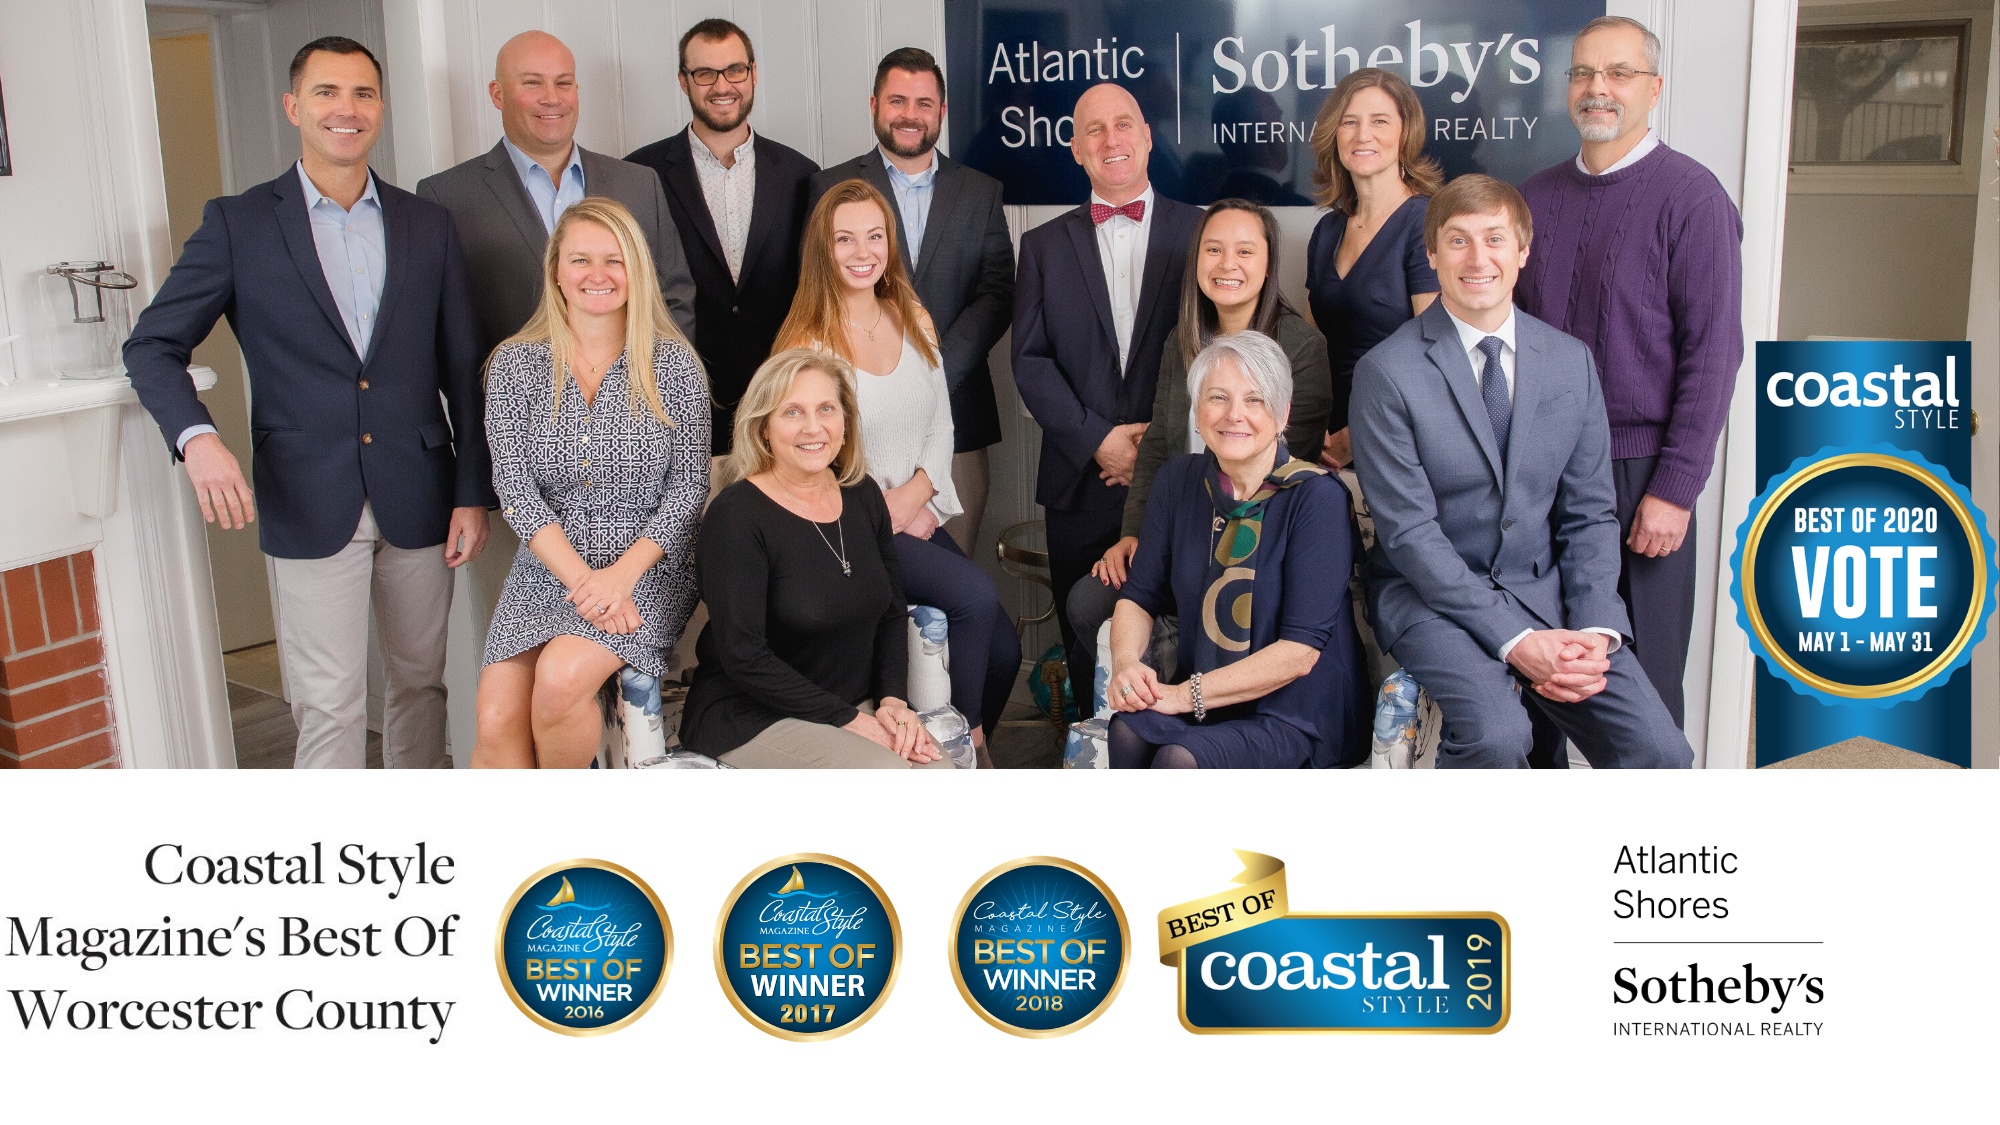 Coastal Style Best Of Worcester County 2020